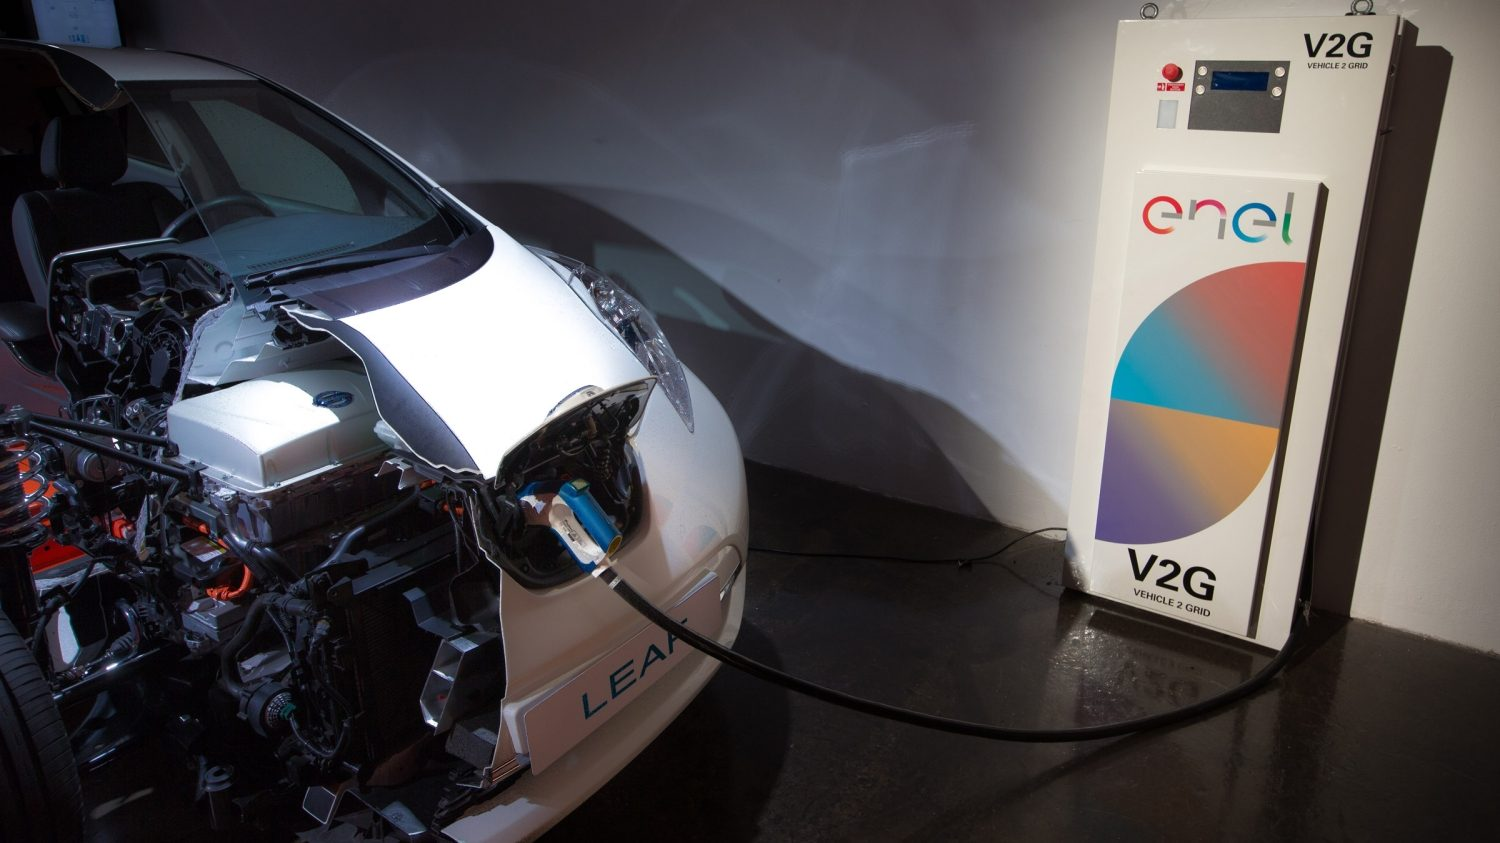 Nissan and Enel's Vehicle-to-Grid programme allows electric vehicles drivers to sell energy back to the grid, and will revolutionise the way we consume energy.